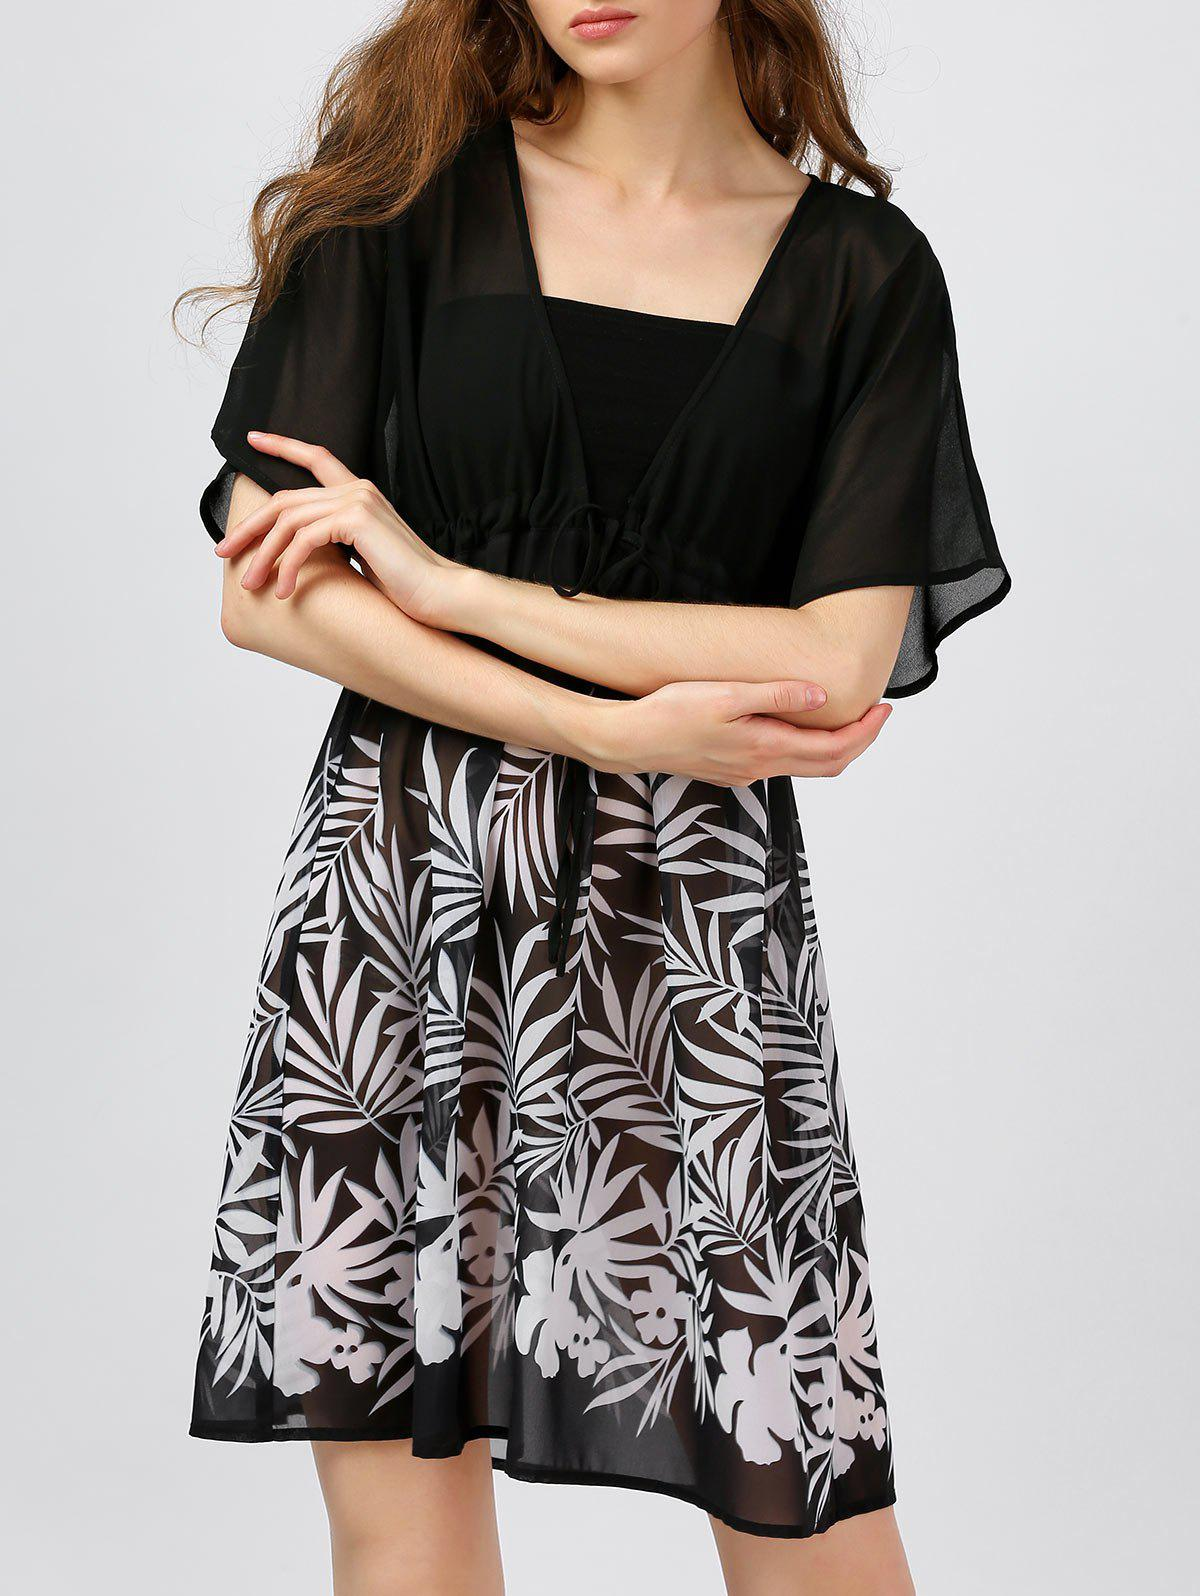 Store Leaf Printed Chiffon Sheer Short Dress